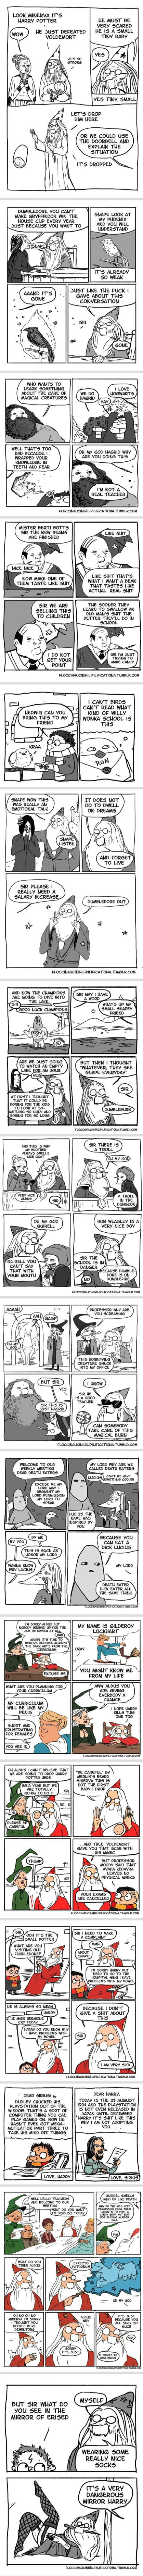 Dumbledore out ( By floccinaucinihilipilification)